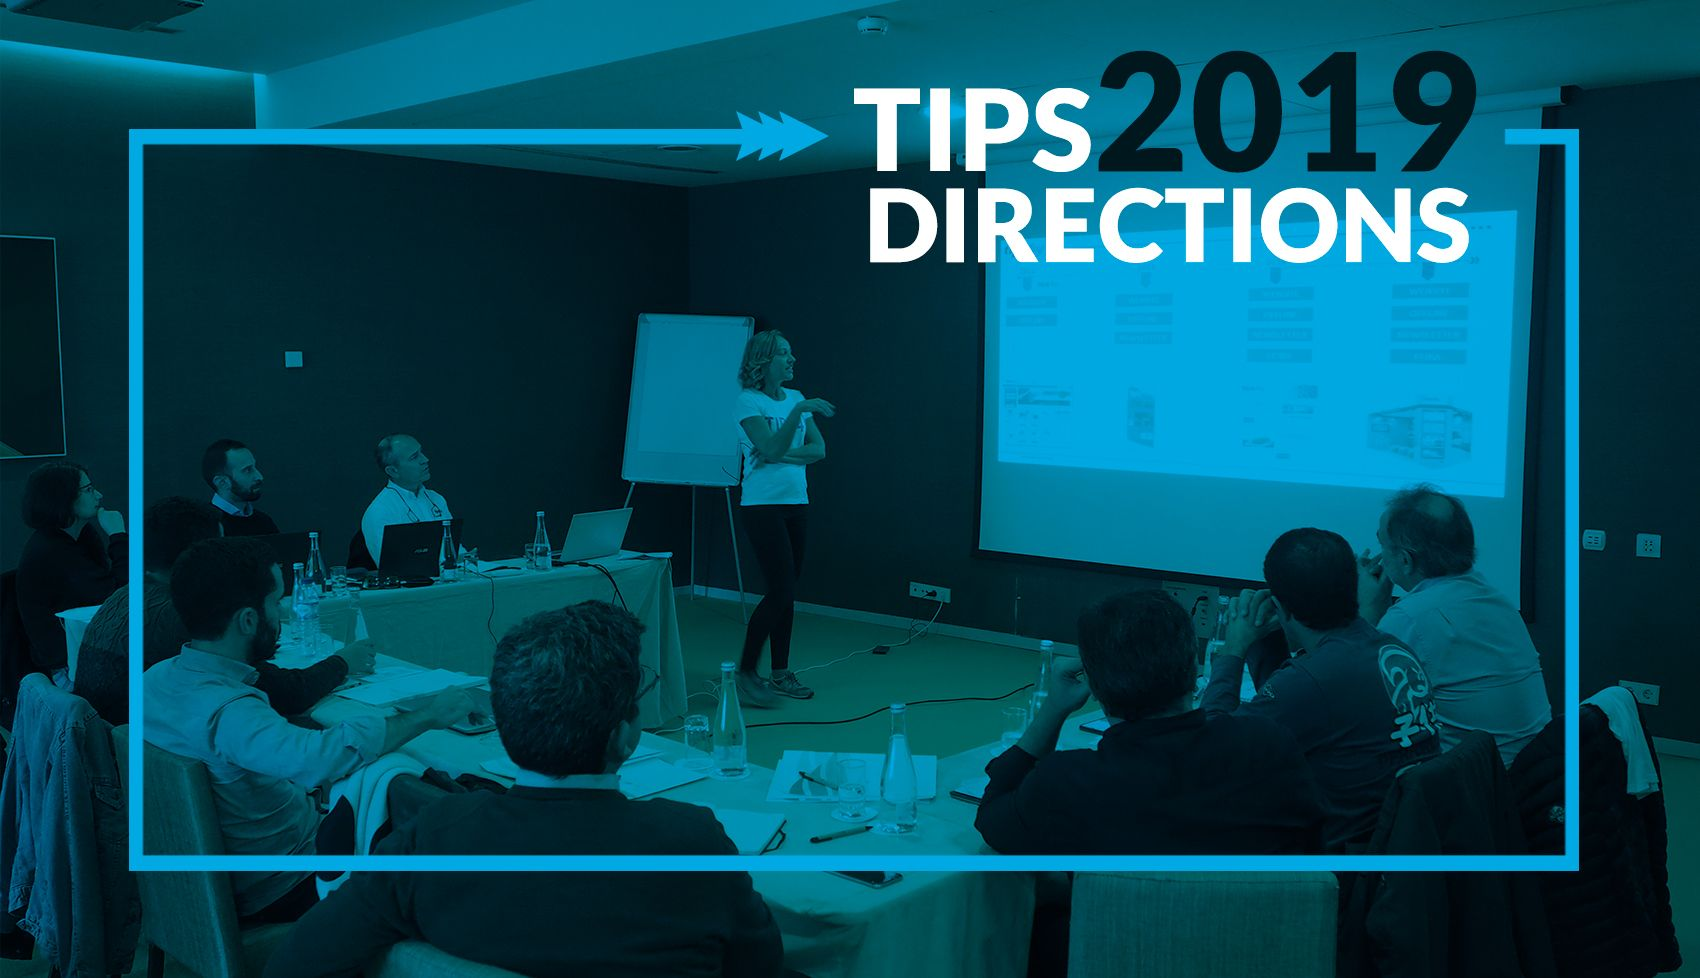 TIPS DIRECTIONS 2019